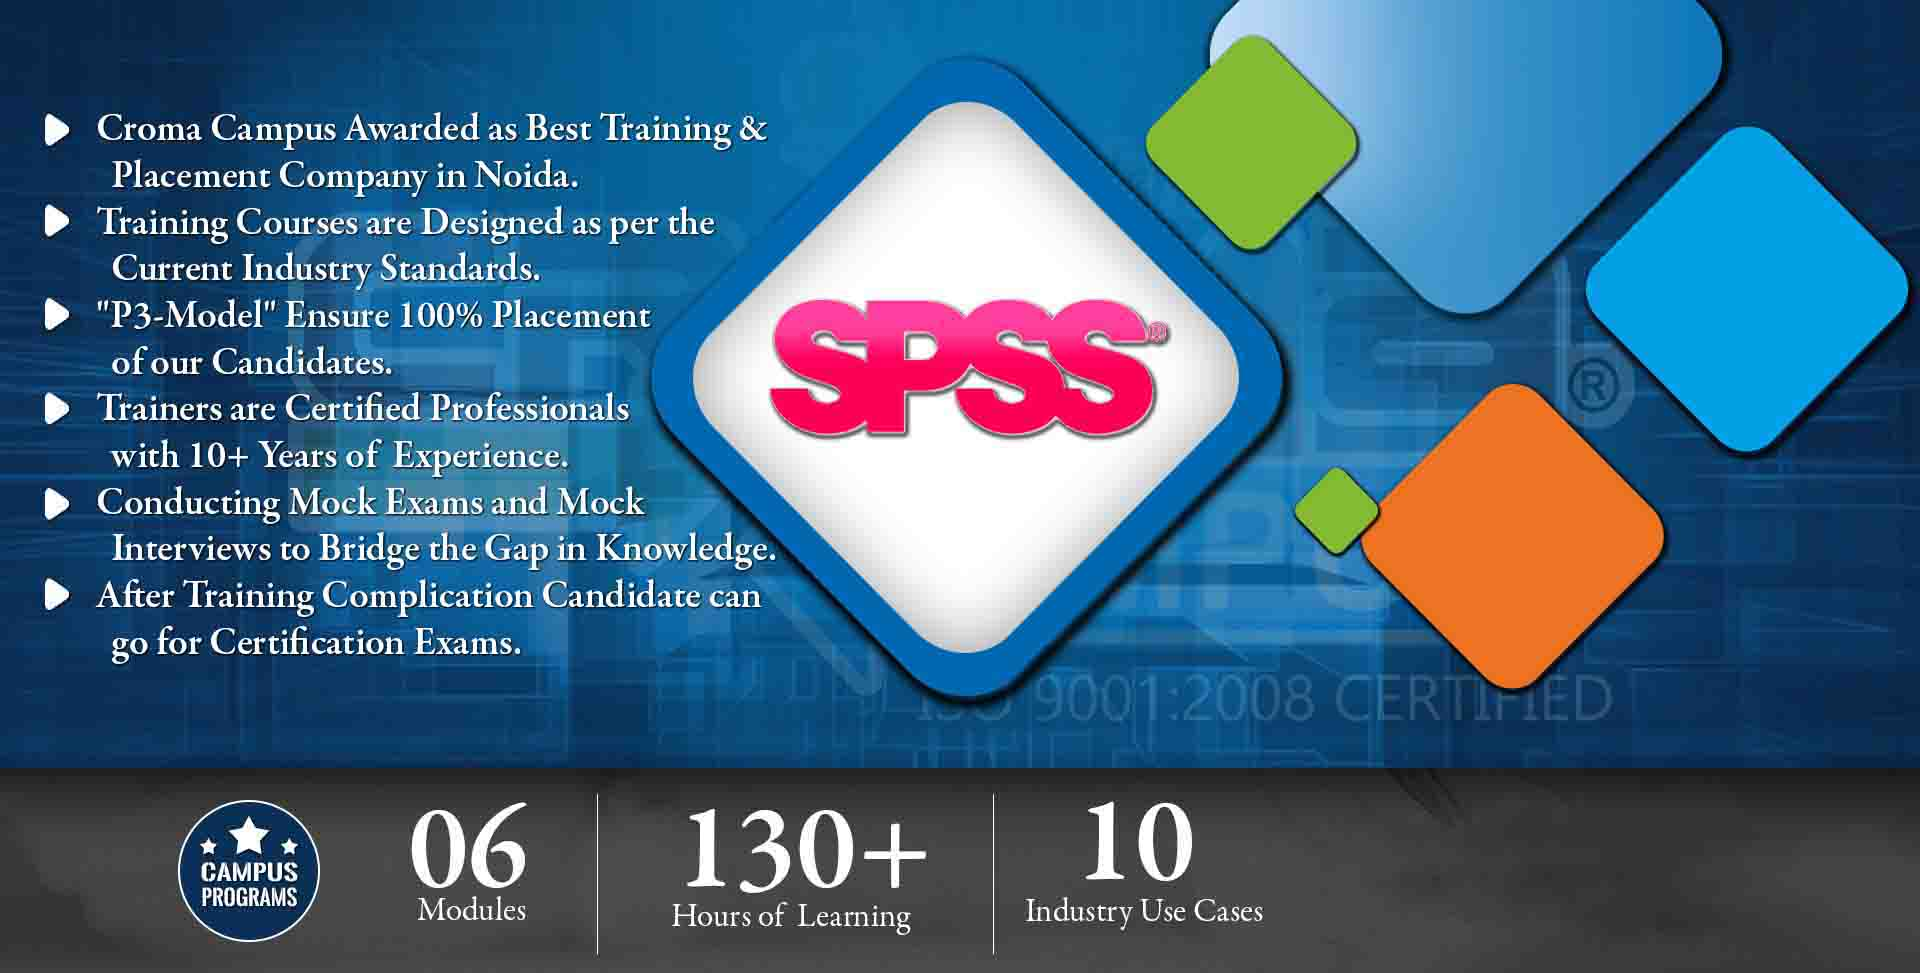 SPSS Training in Delhi NCR- Croma Campus